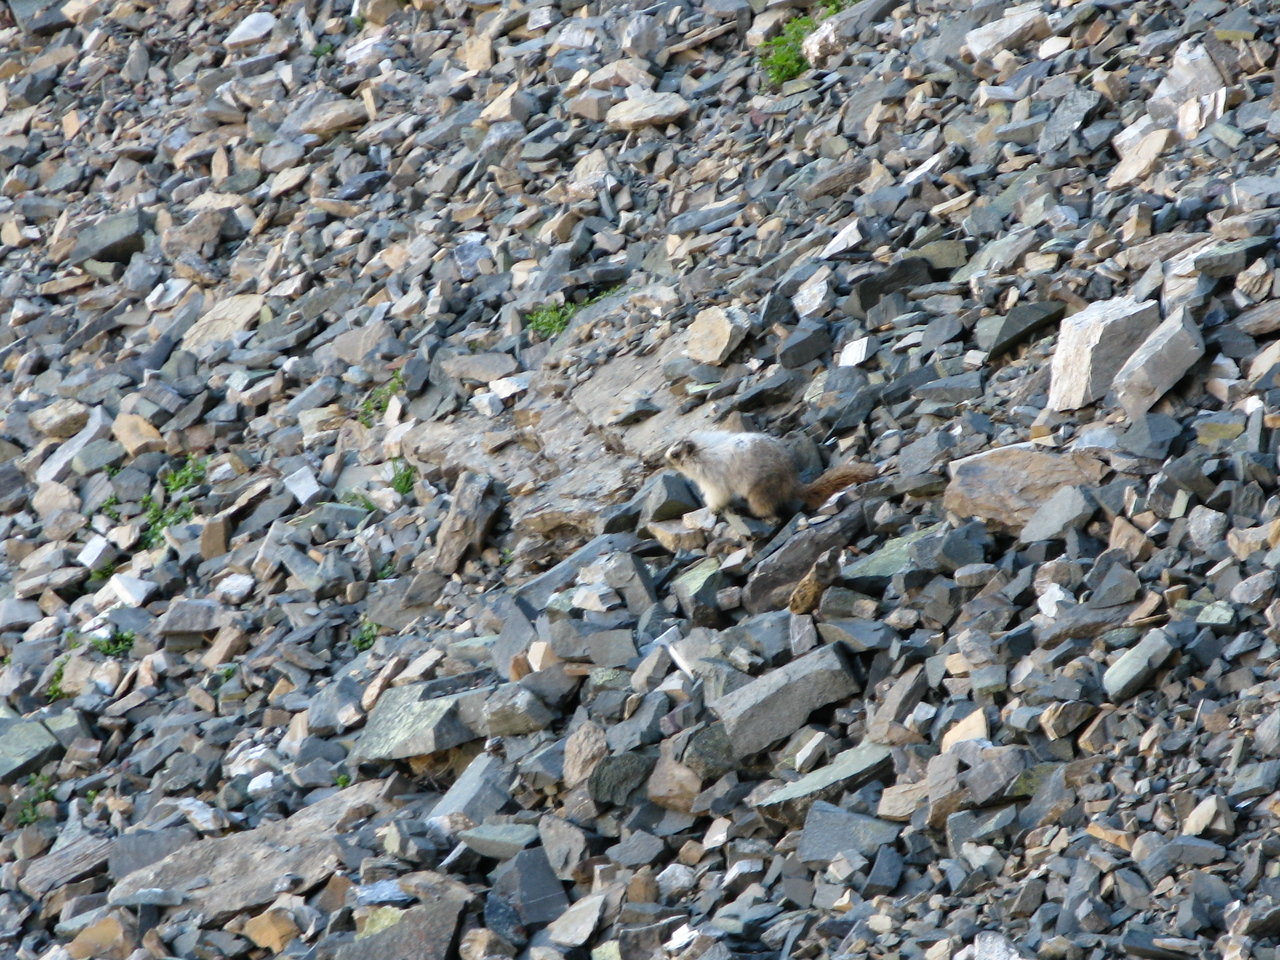 The color of the marmot's coat disquises him pretty well in these rocks.  The marmot is just right of the center of the picture.